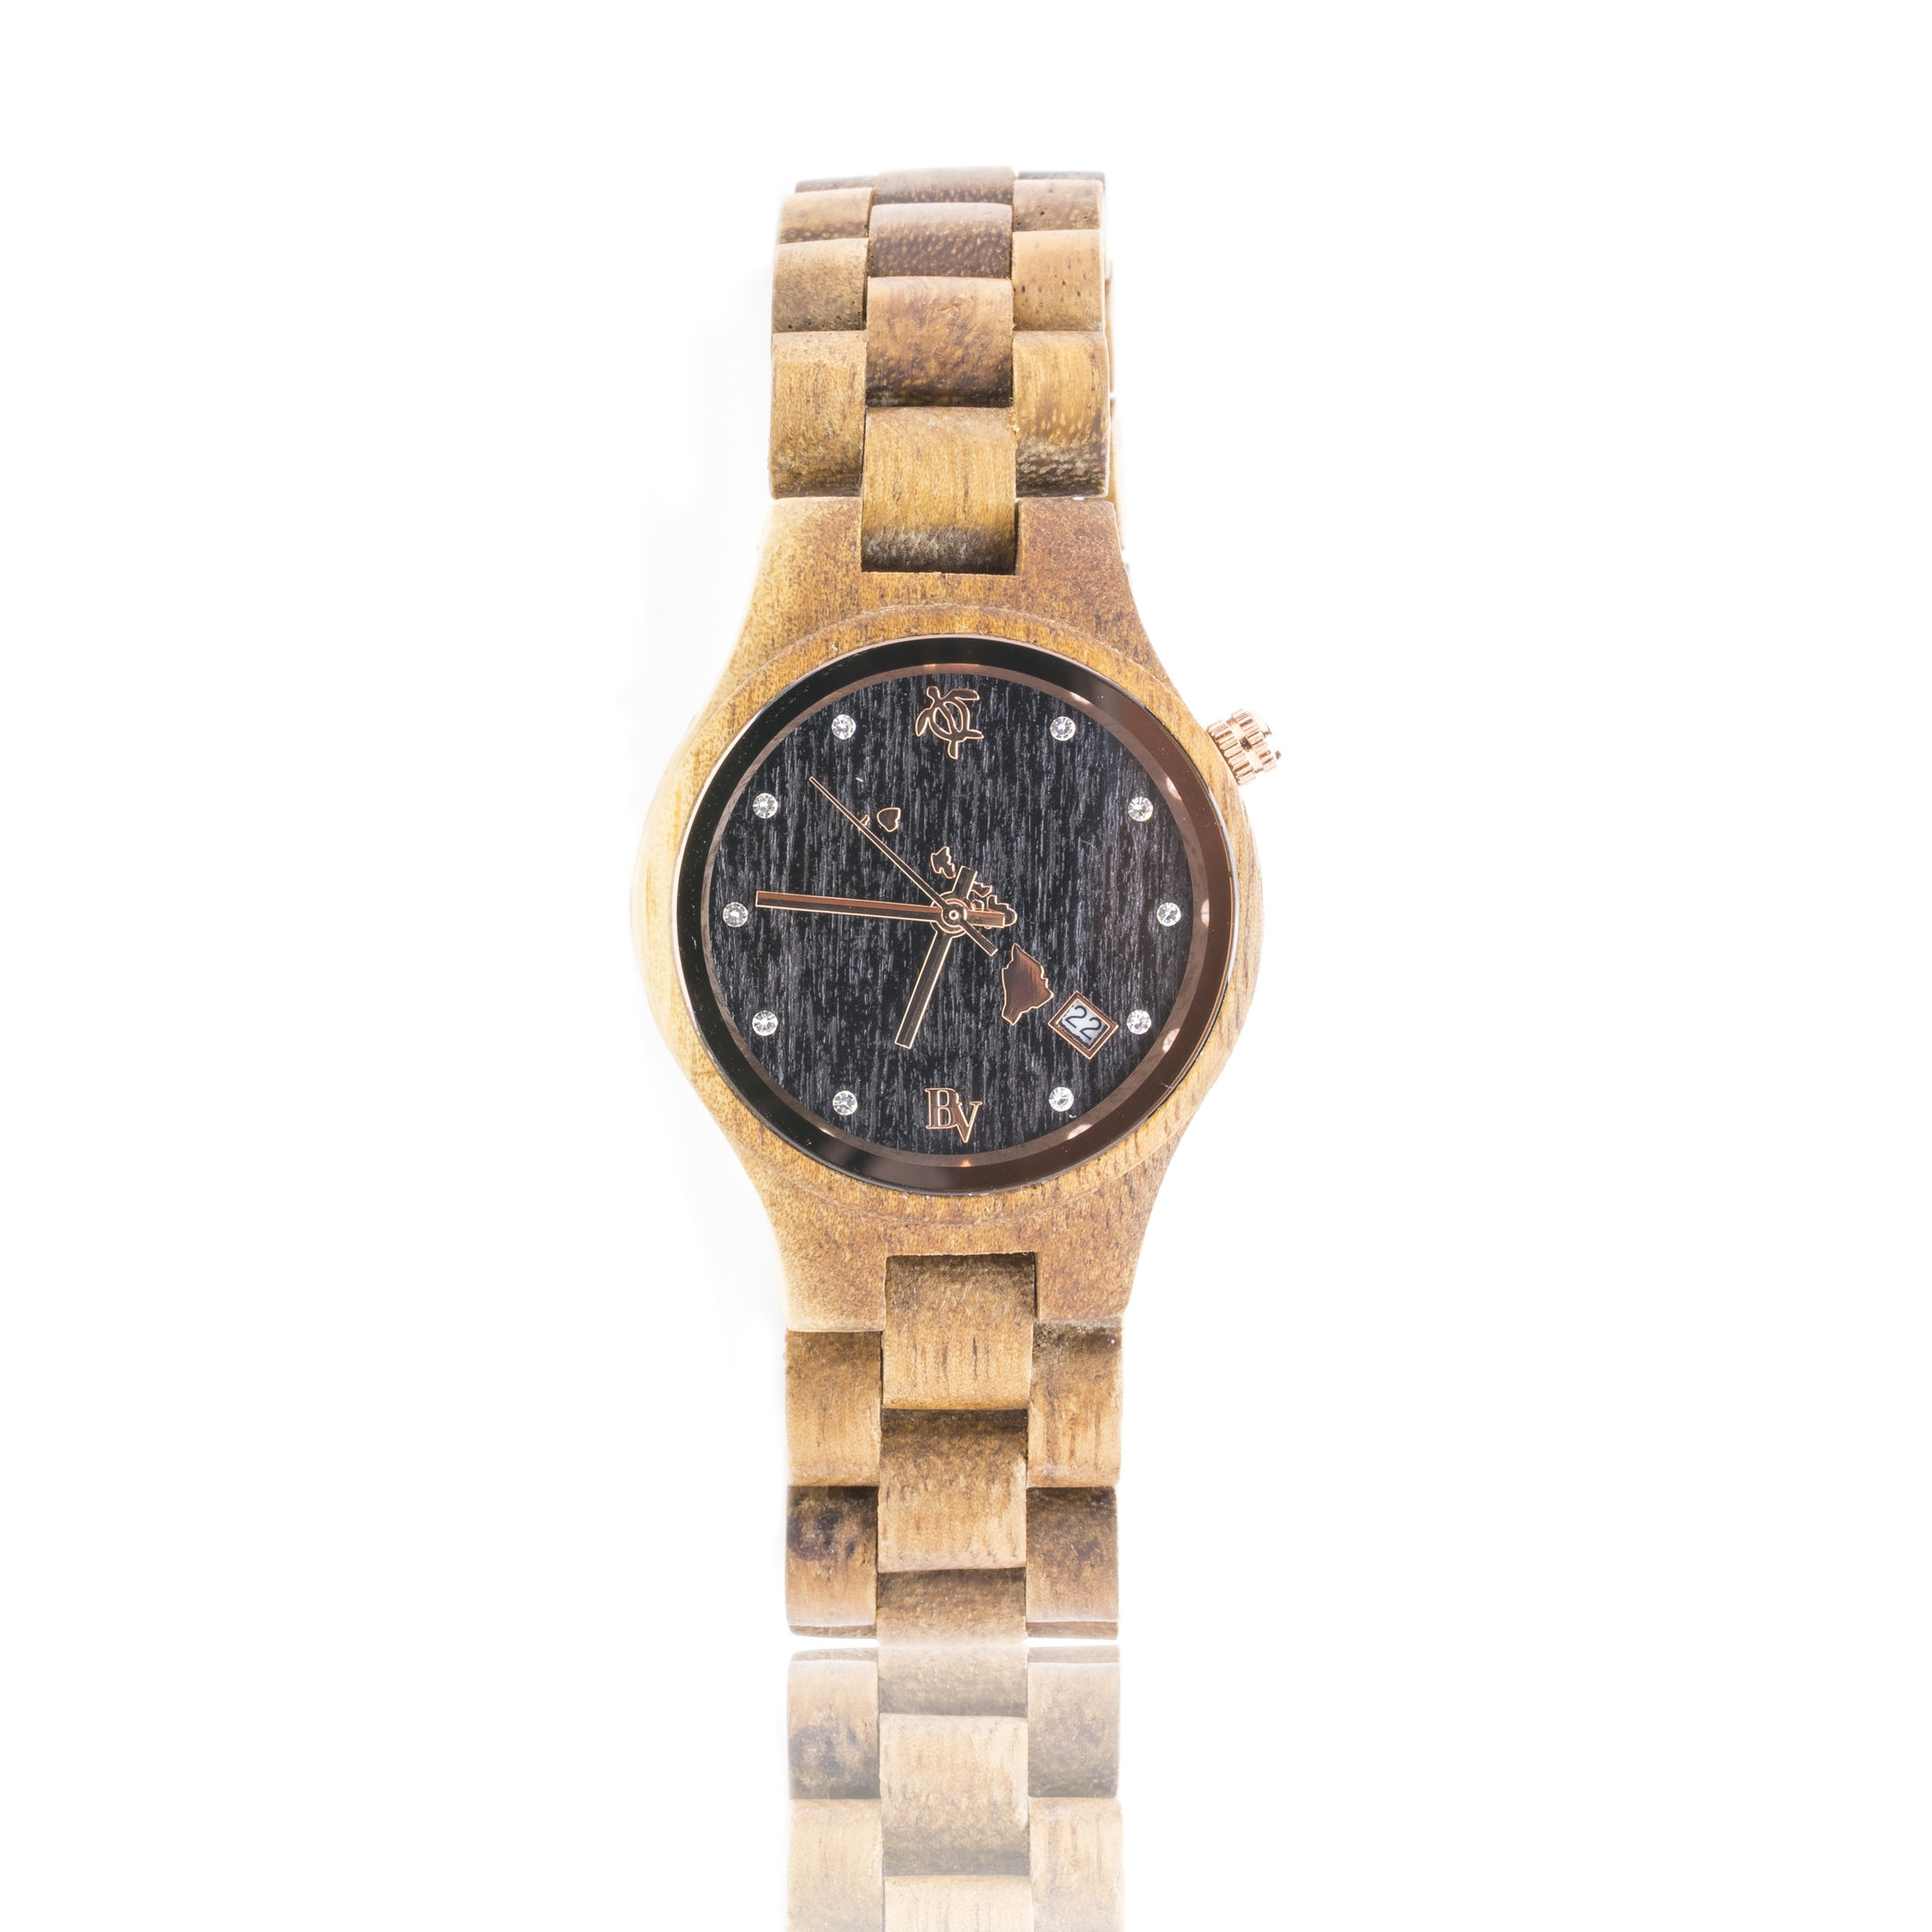 Koa wood watches for women